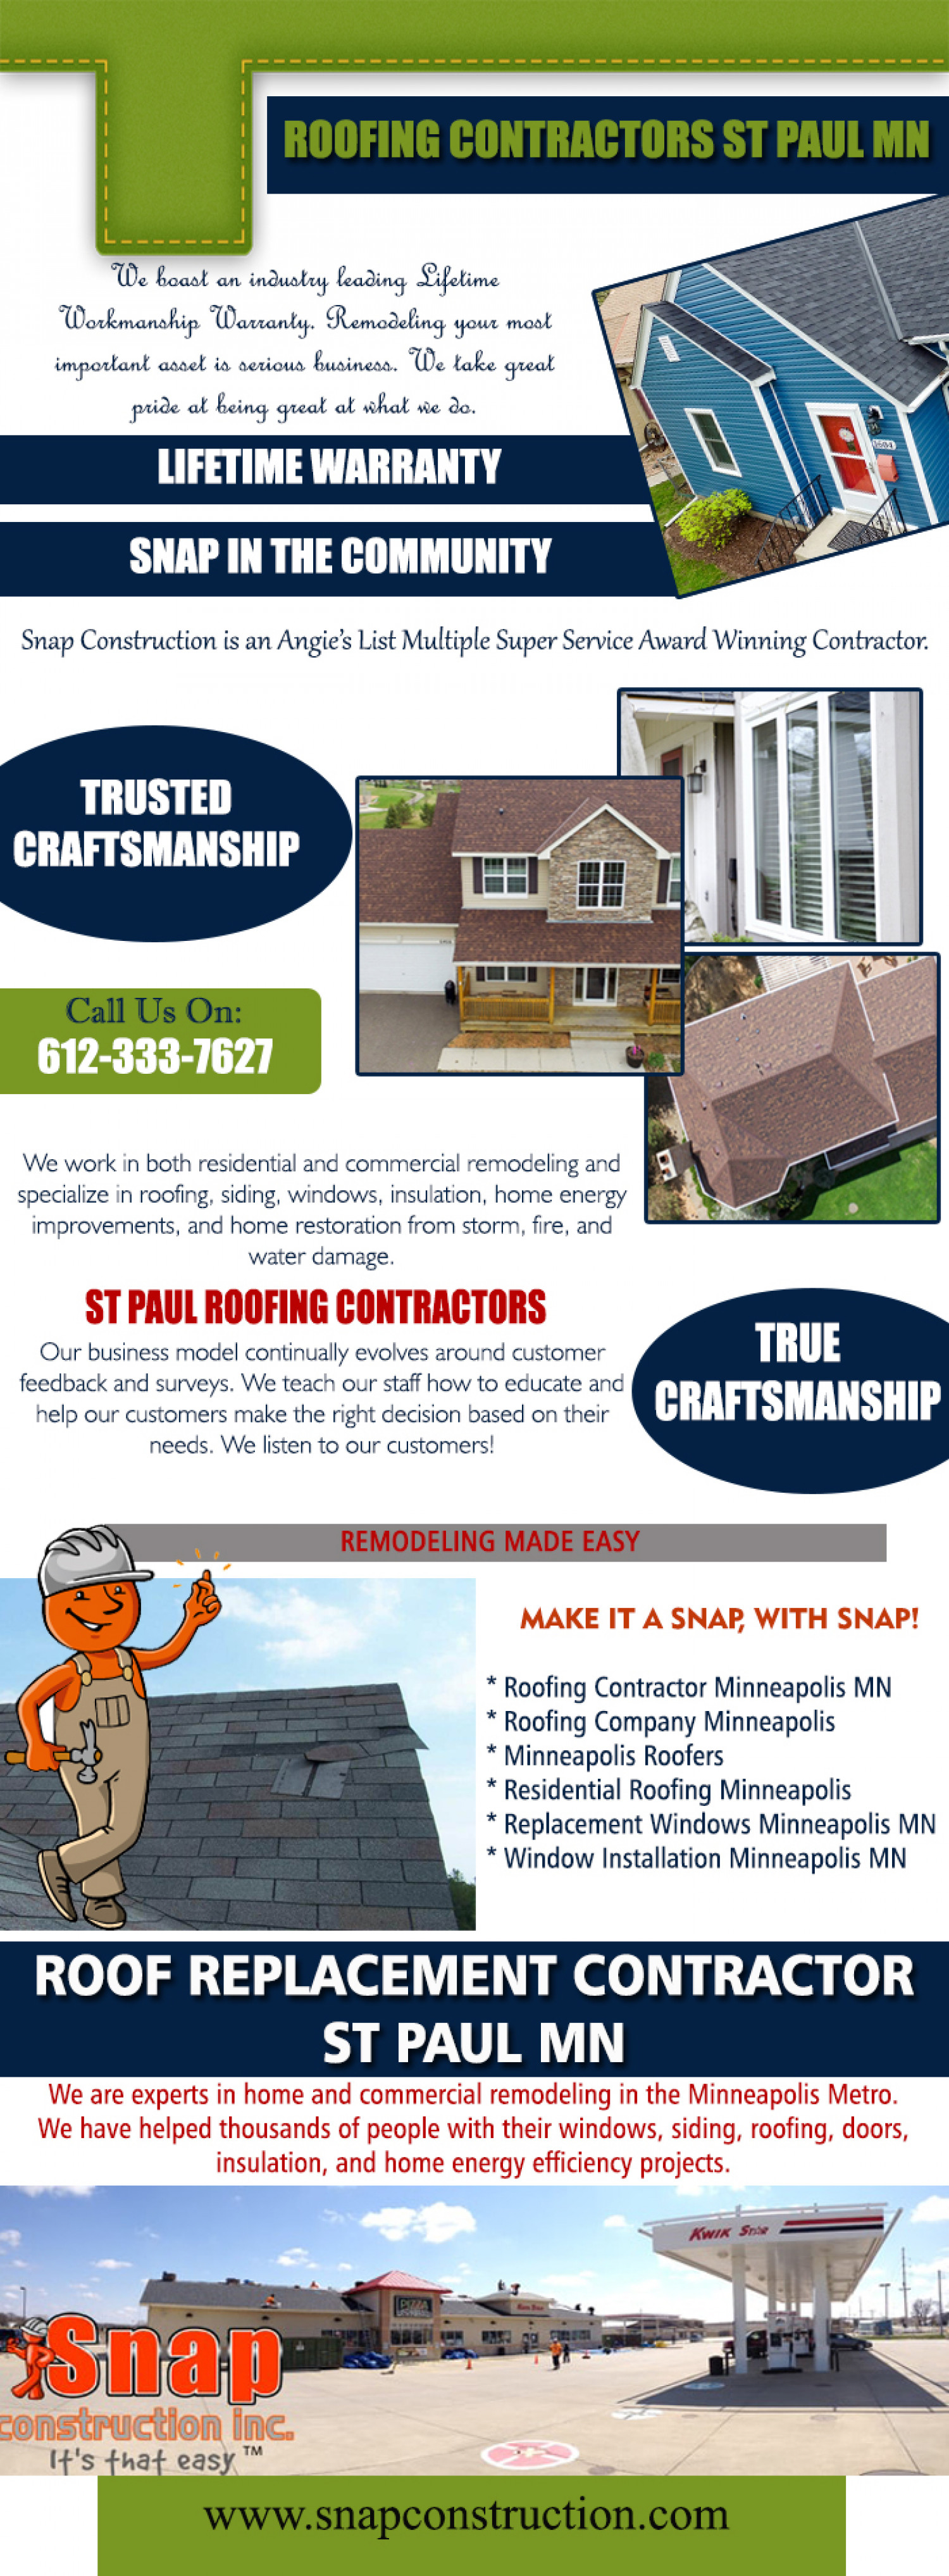 Roofing Contractors St Paul Mn Infographic